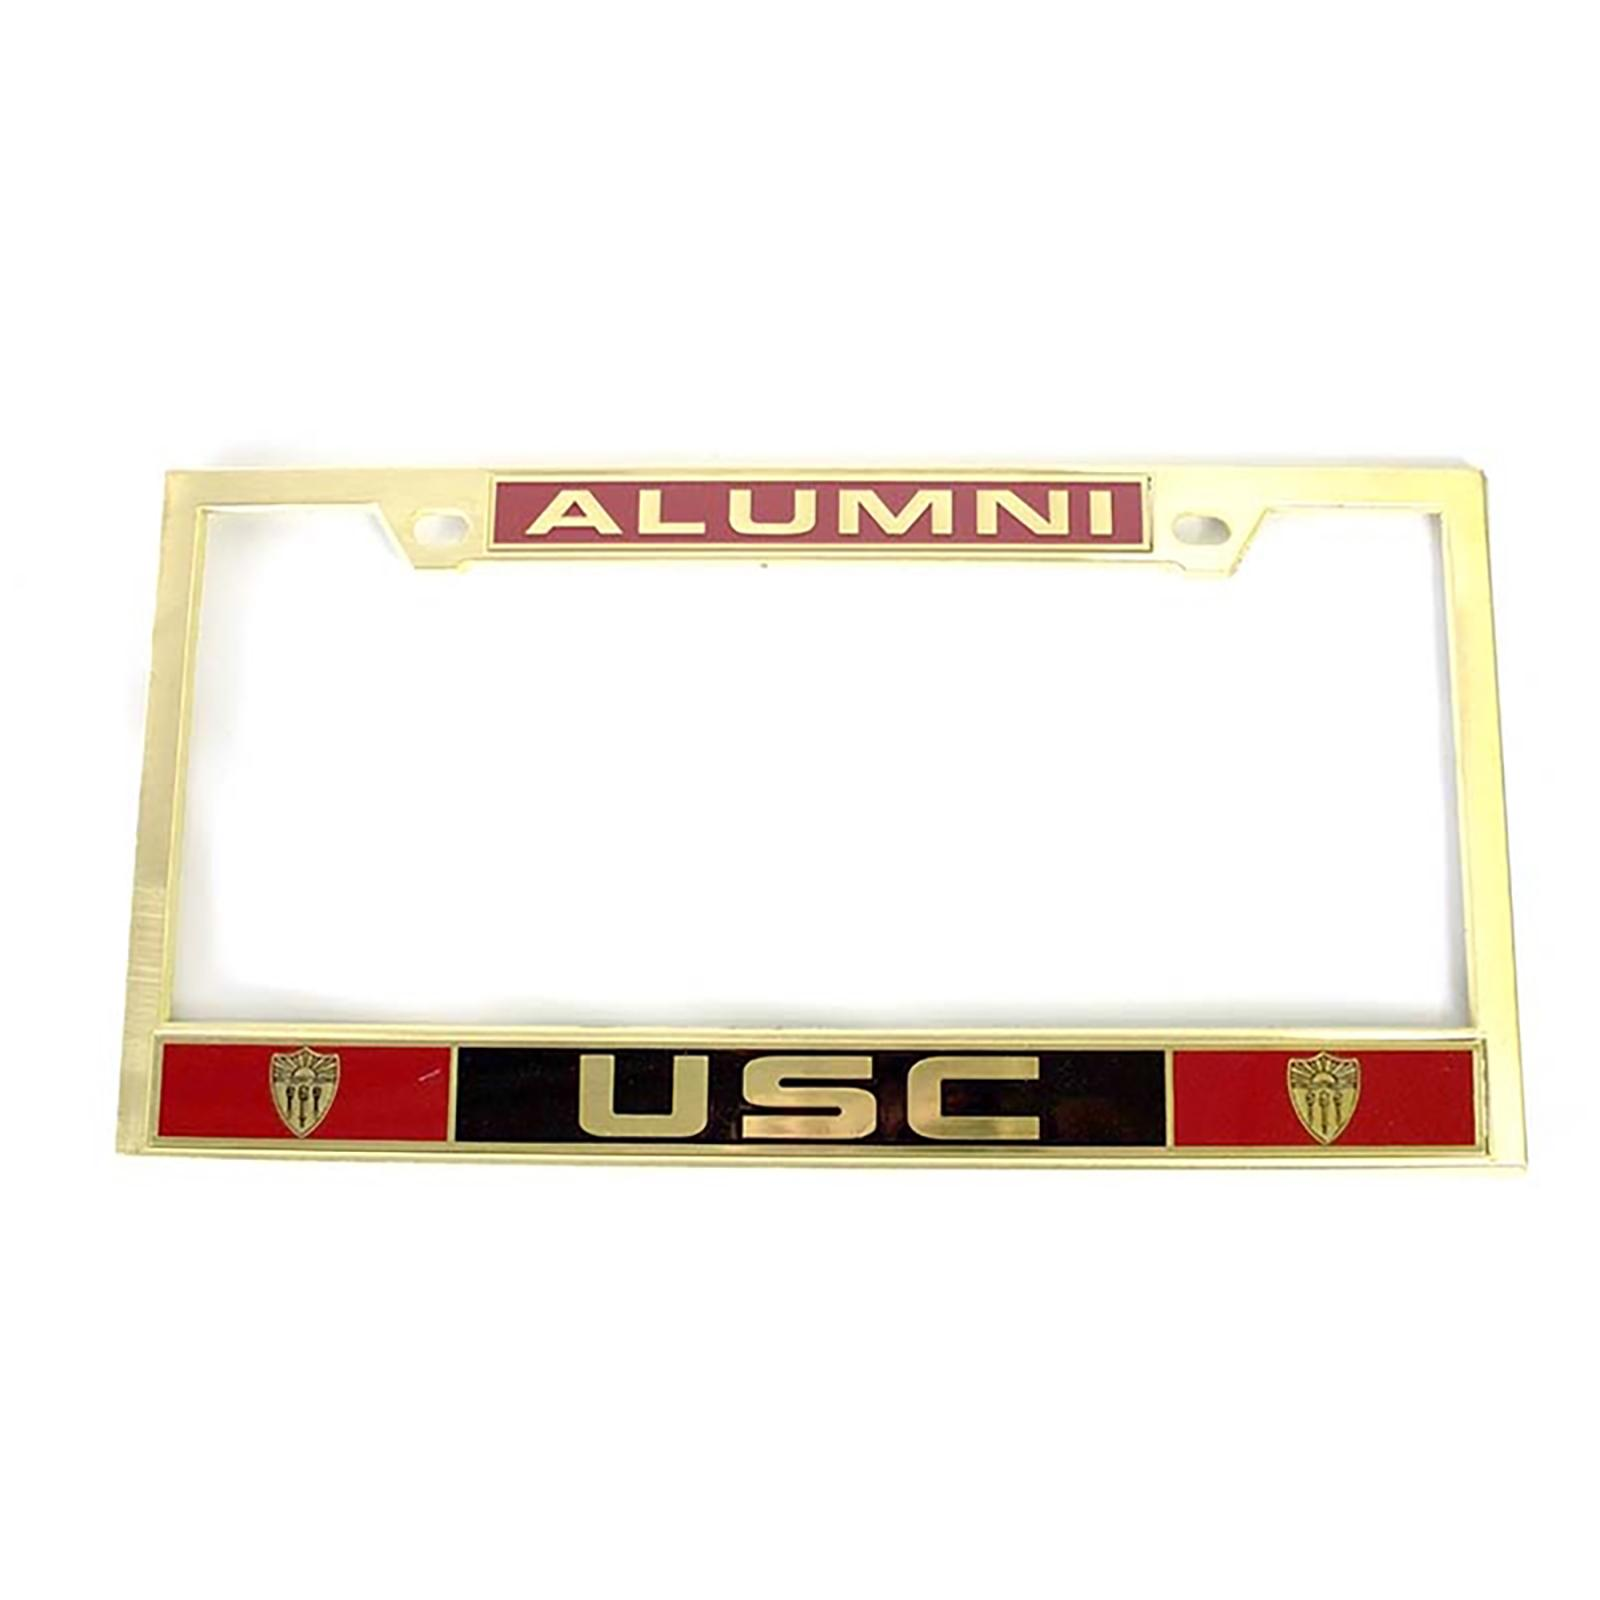 USC Alumni Solid Brass License Plate Frame